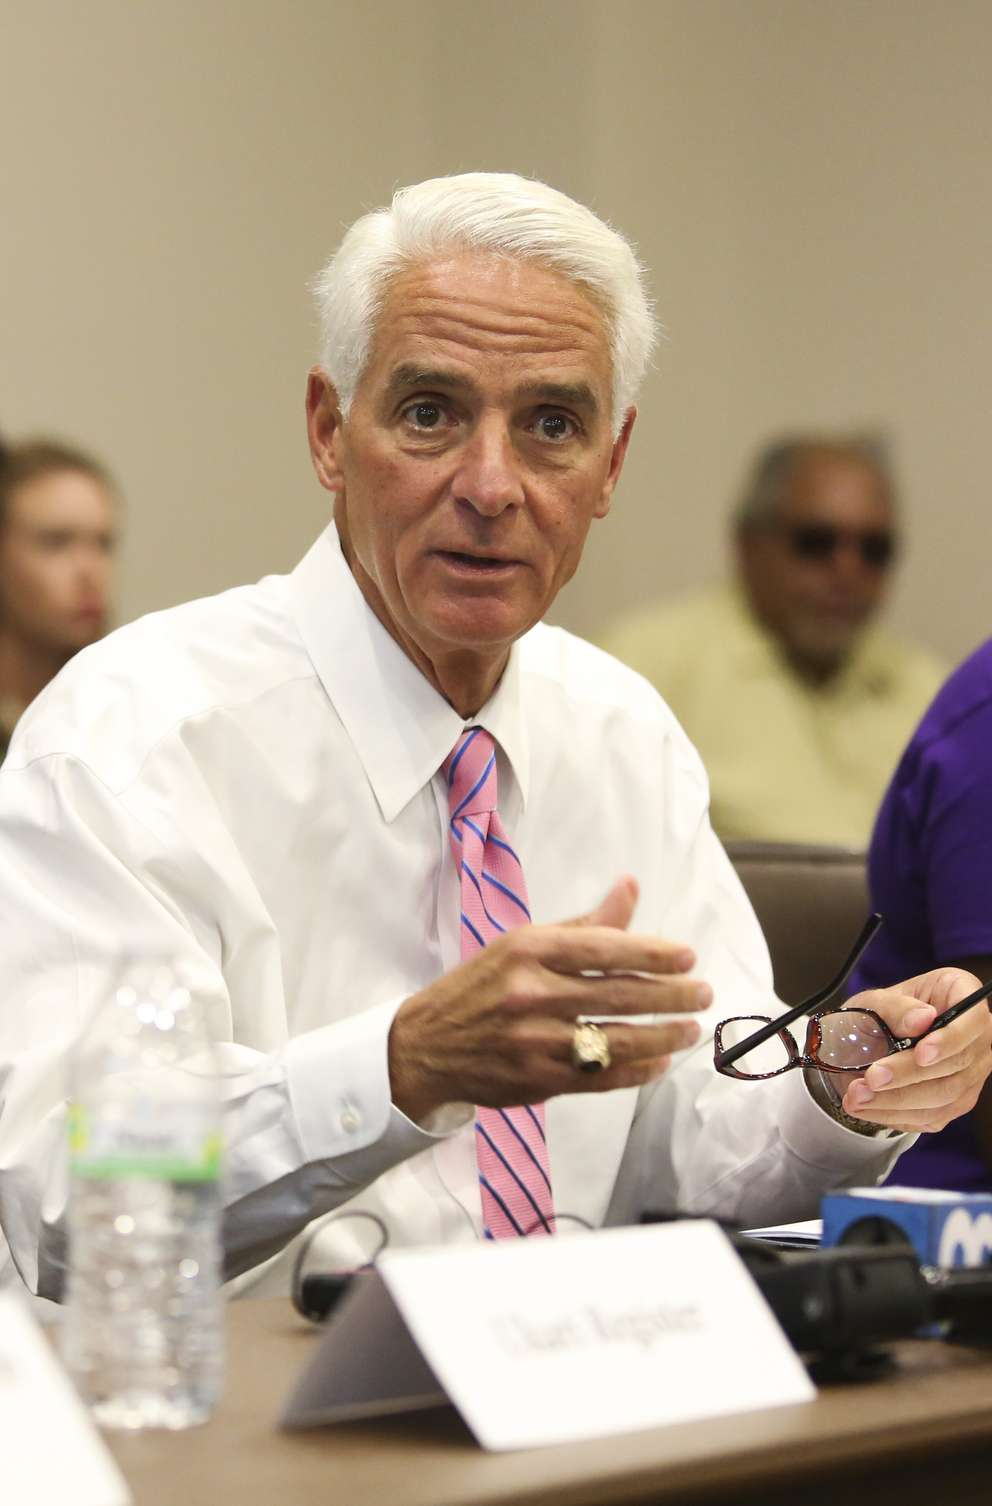 U.S. Rep. Charlie Crist cosigned a letter to the Centers for Medicare and Medicaid Services sharing concerns about a lack of regulatory oversight. [DIRK SHADD | Times]